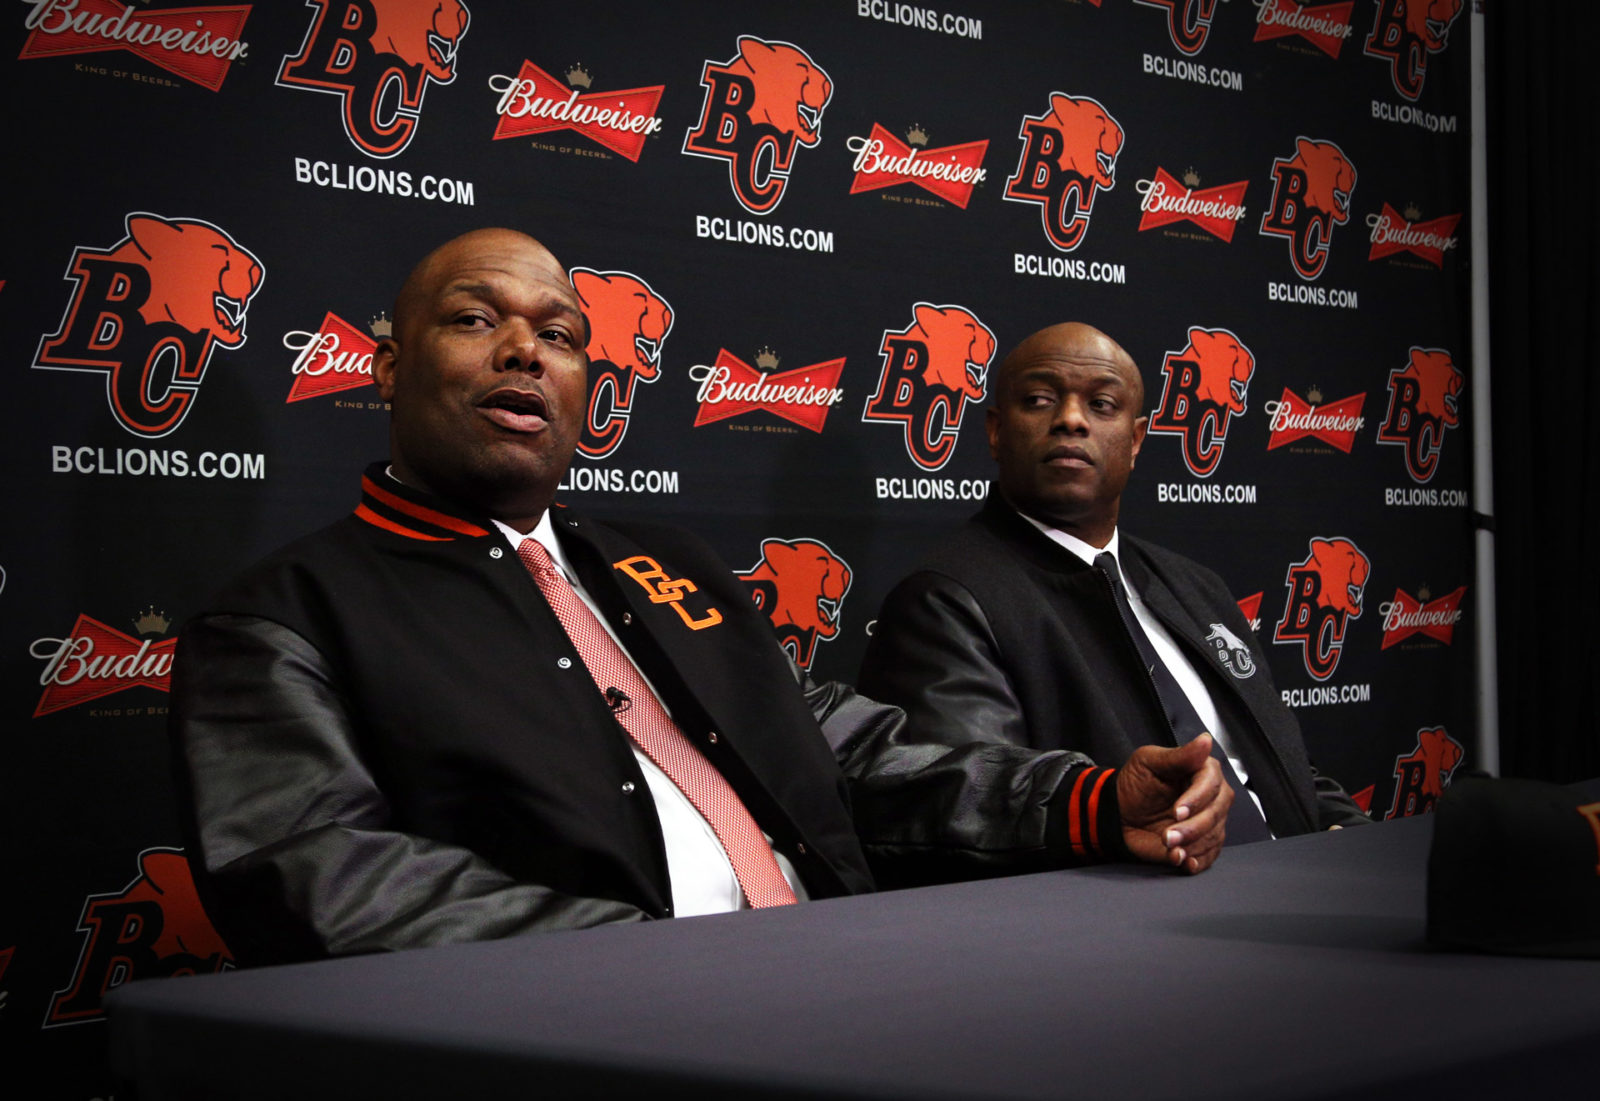 BC Lions Announce 2019 Coaching Staff - BC Lions